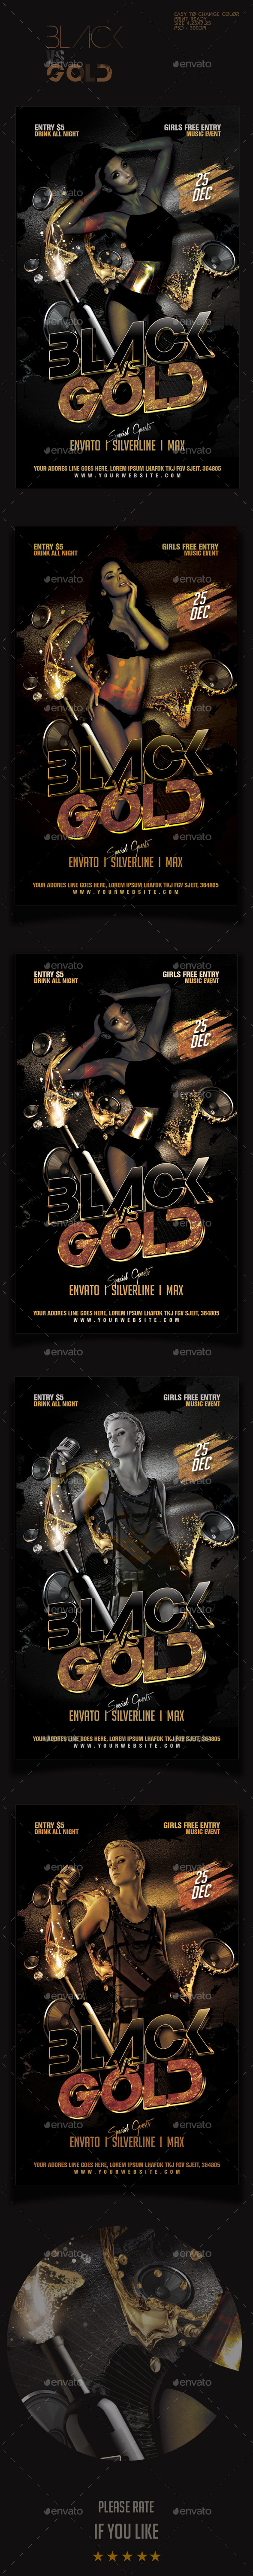 Black vs Gold Party Flyer Template - Clubs & Parties Events